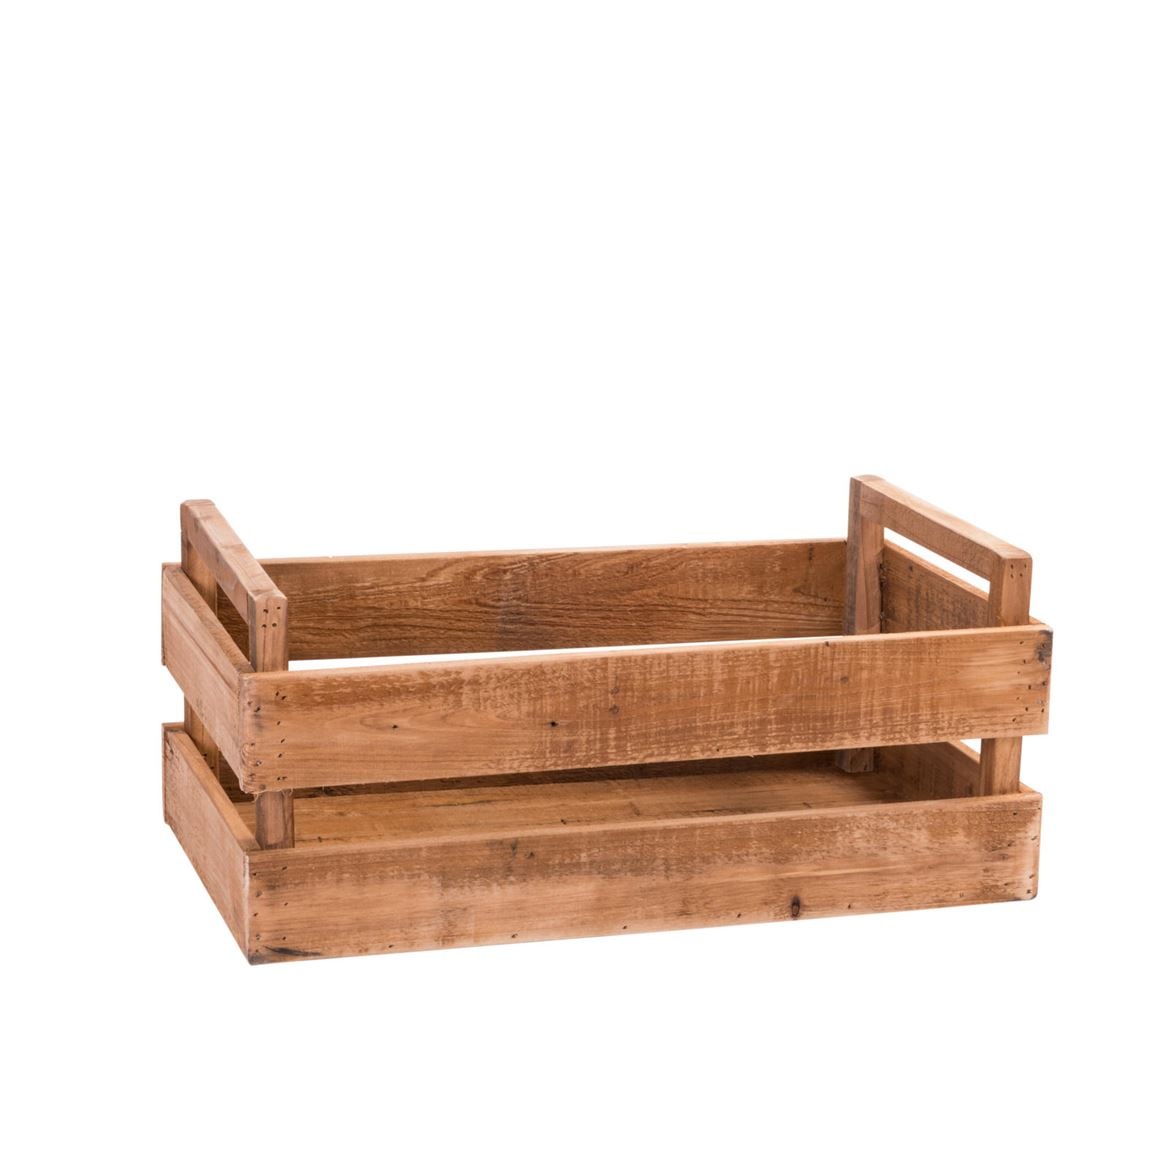 RECYCLE Caixa natural H 15 x W 45 x D 27 cm_recycle-caixa-natural-h-15-x-w-45-x-d-27-cm